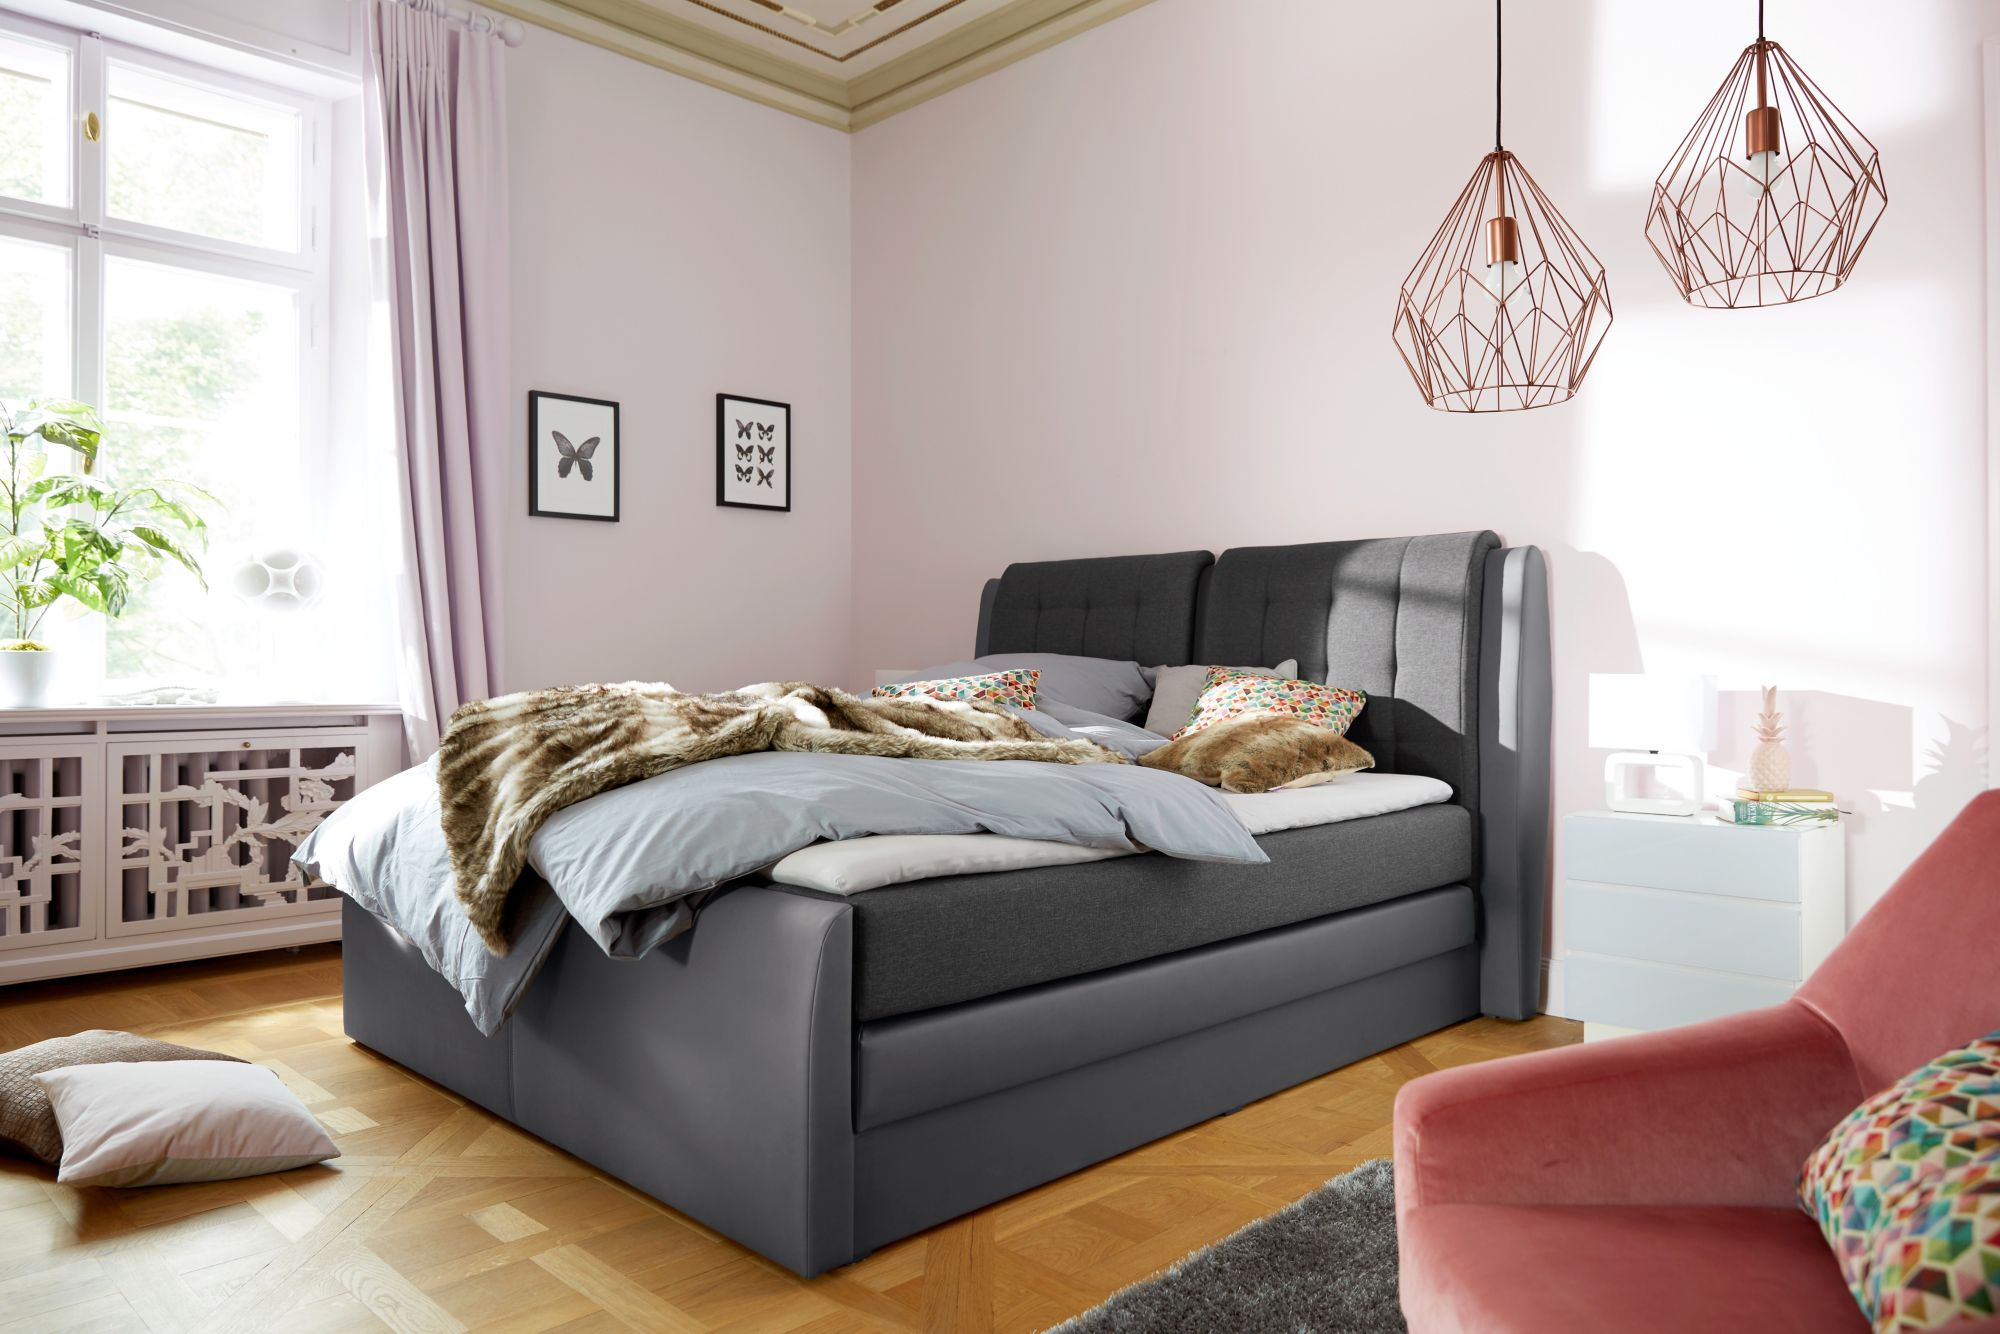 COLLECTION AB Collection AB Boxspringbett »Rubene«, inkl. Bettkasten und Topper